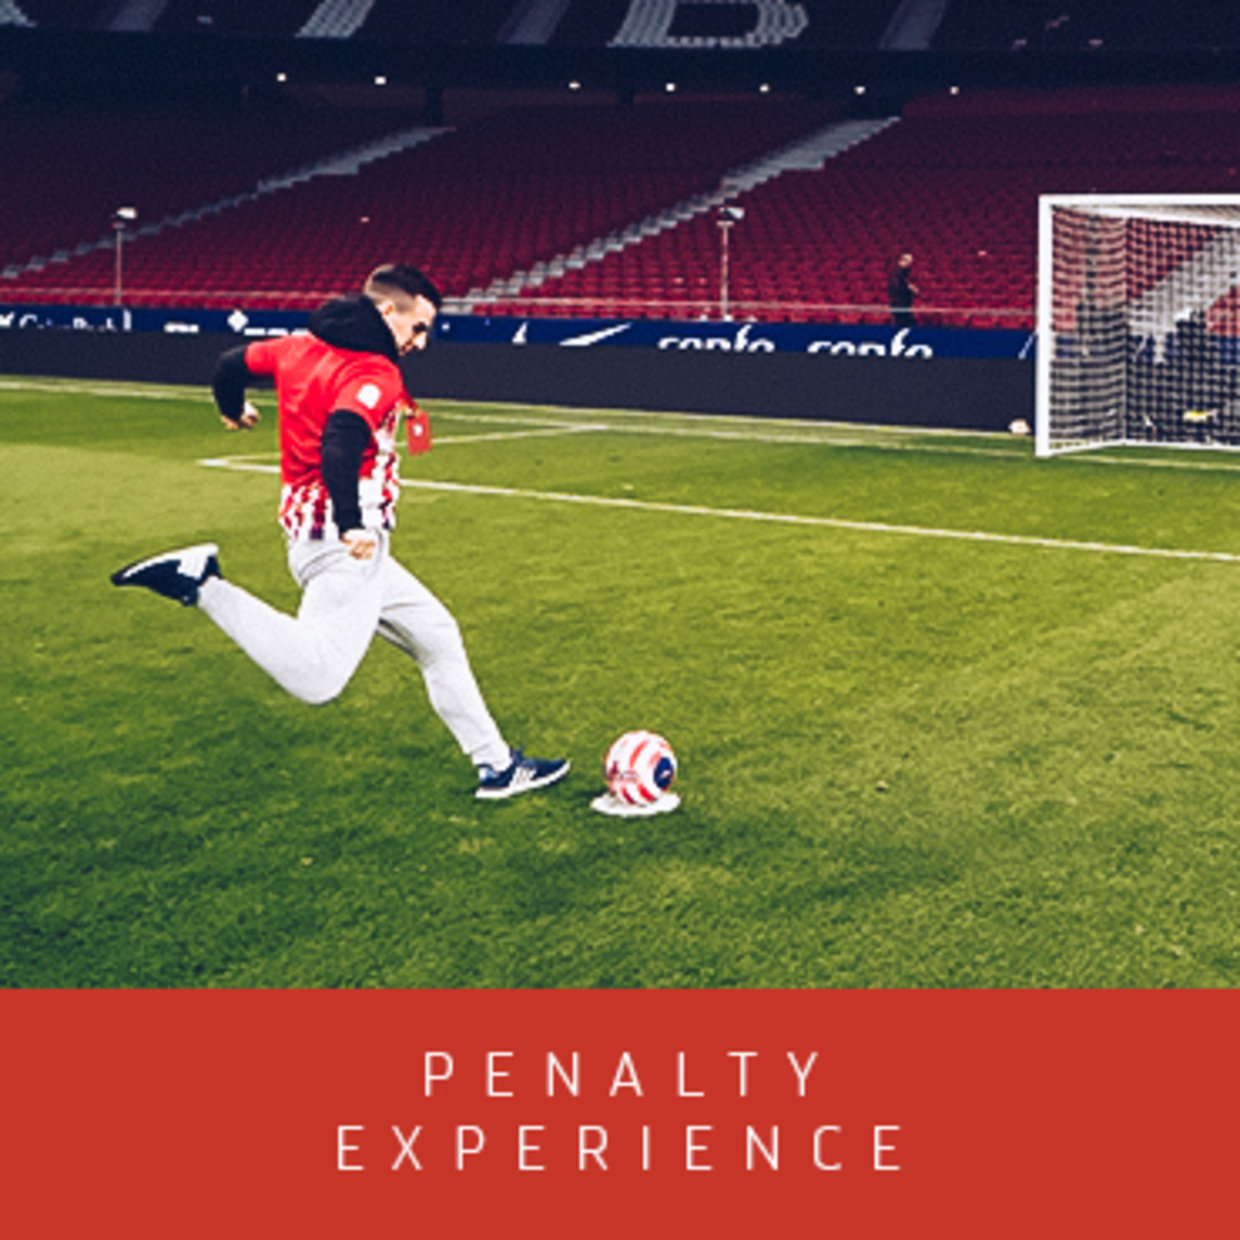 PENALTY EXPERIENCE